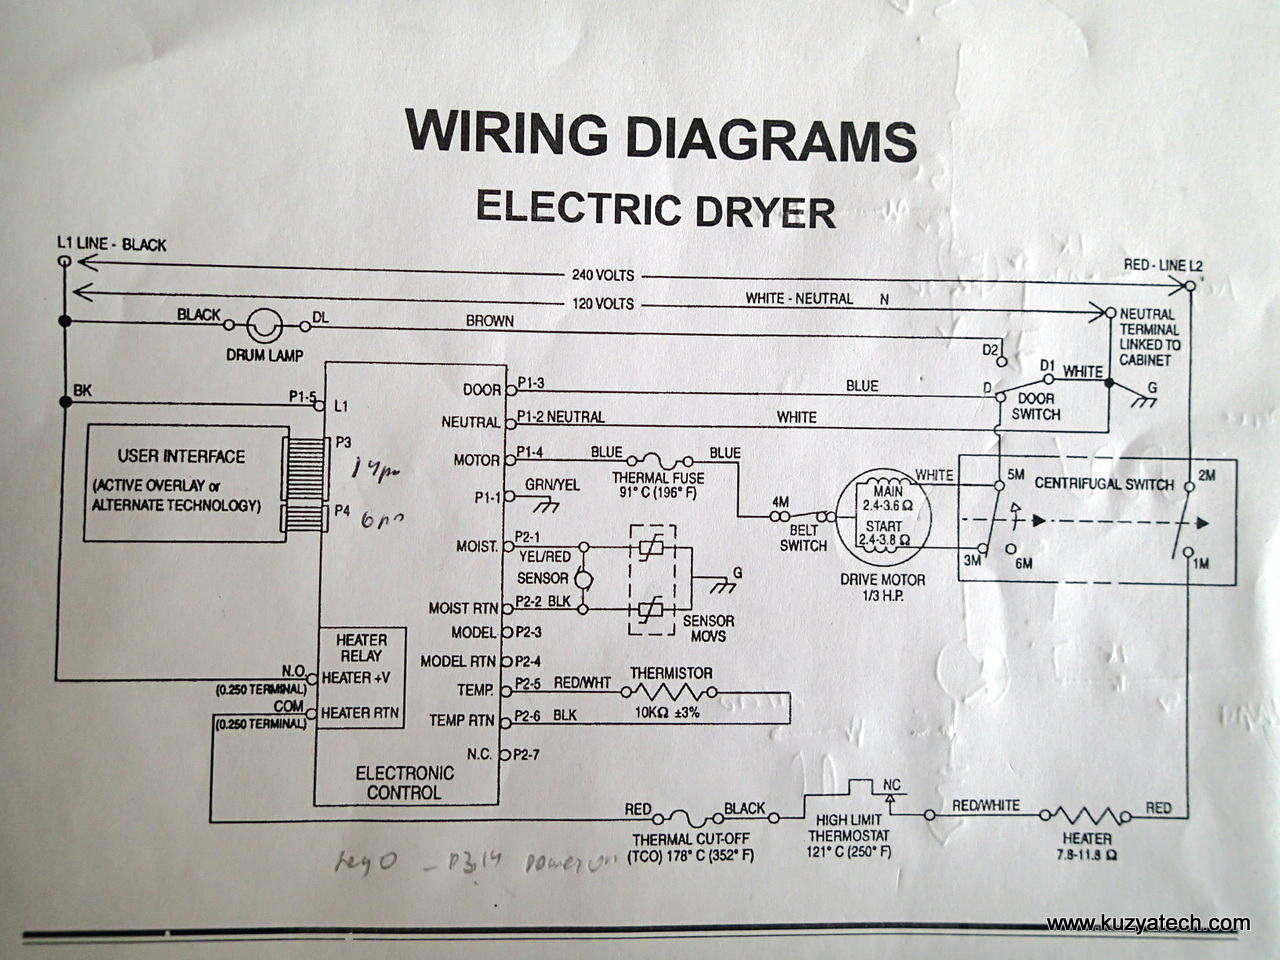 AMMN_4518] Whirlpool Duet Electric Dryer Wiring Diagram Free Wiring Diagram  - WEBDIAGRAM.PHPBB3.ESDiagram Database Website Full Edition - PHPBB3.ES